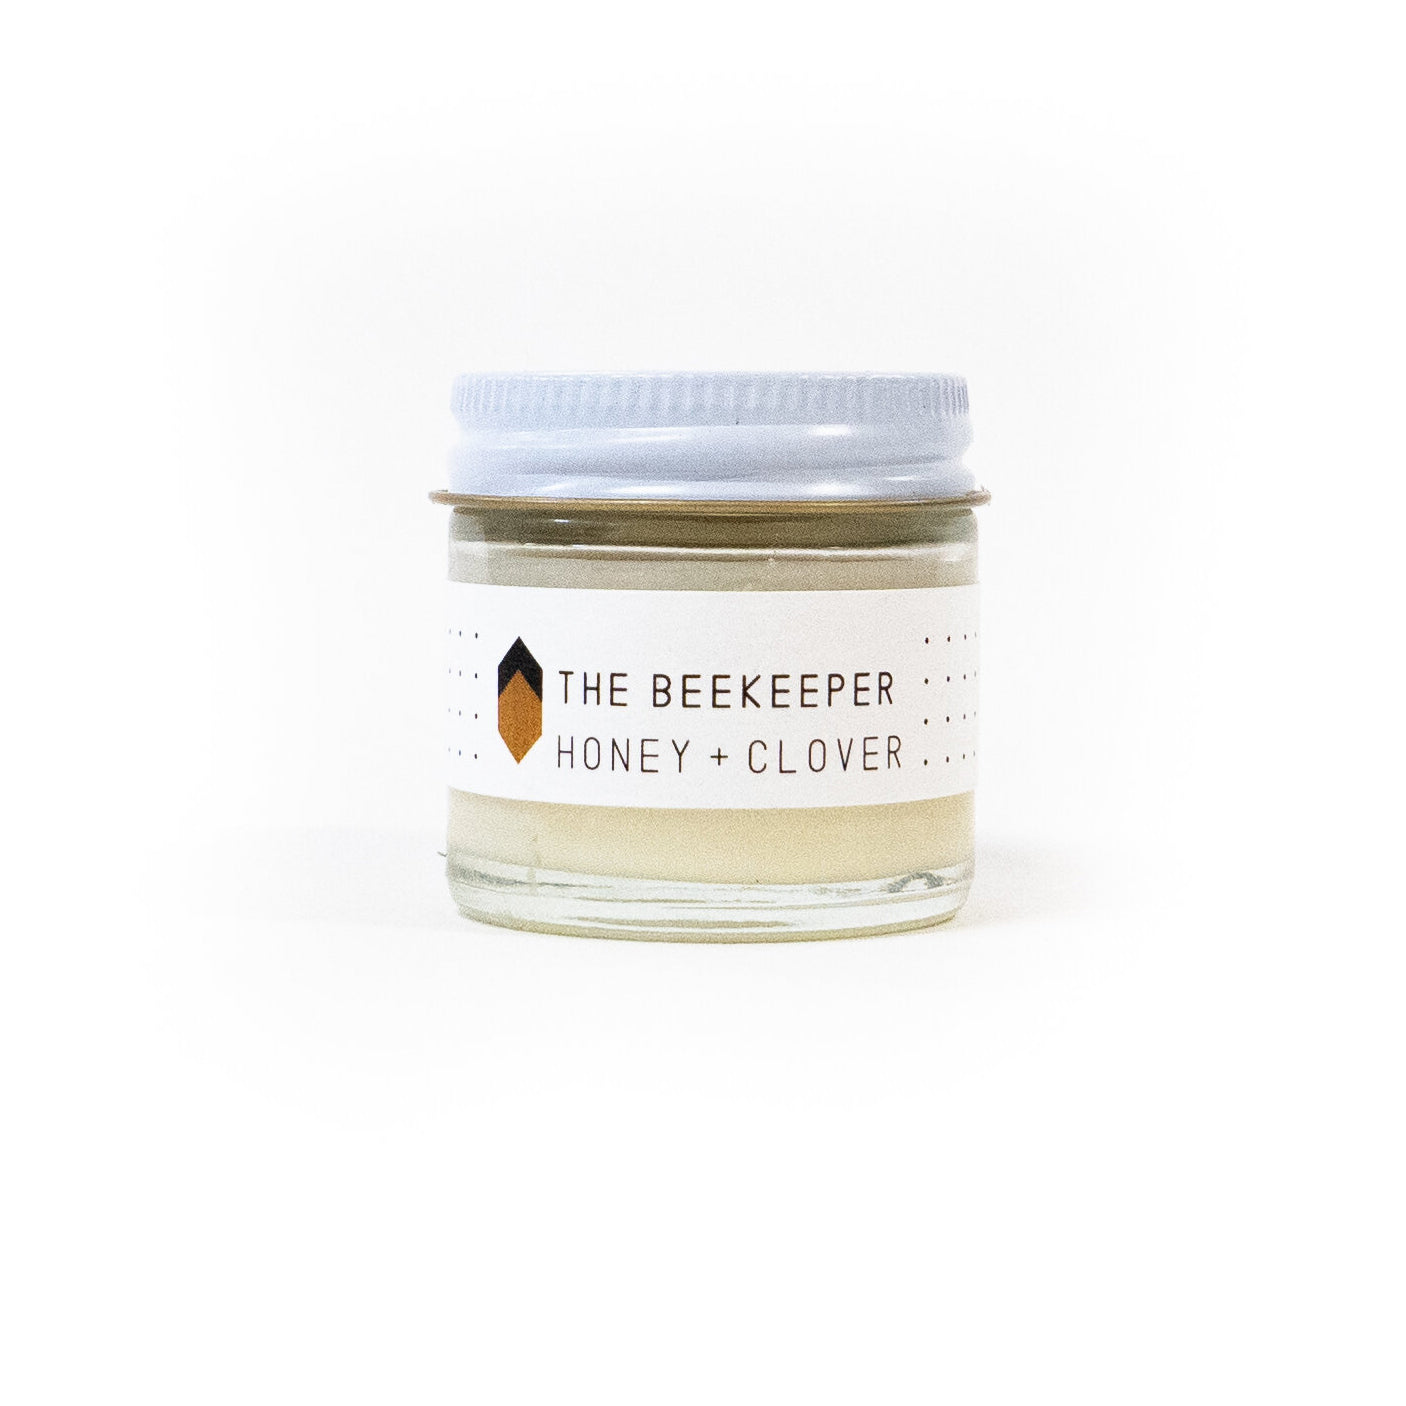 the beekeeper solid perfume balm - honey + clover | field kit